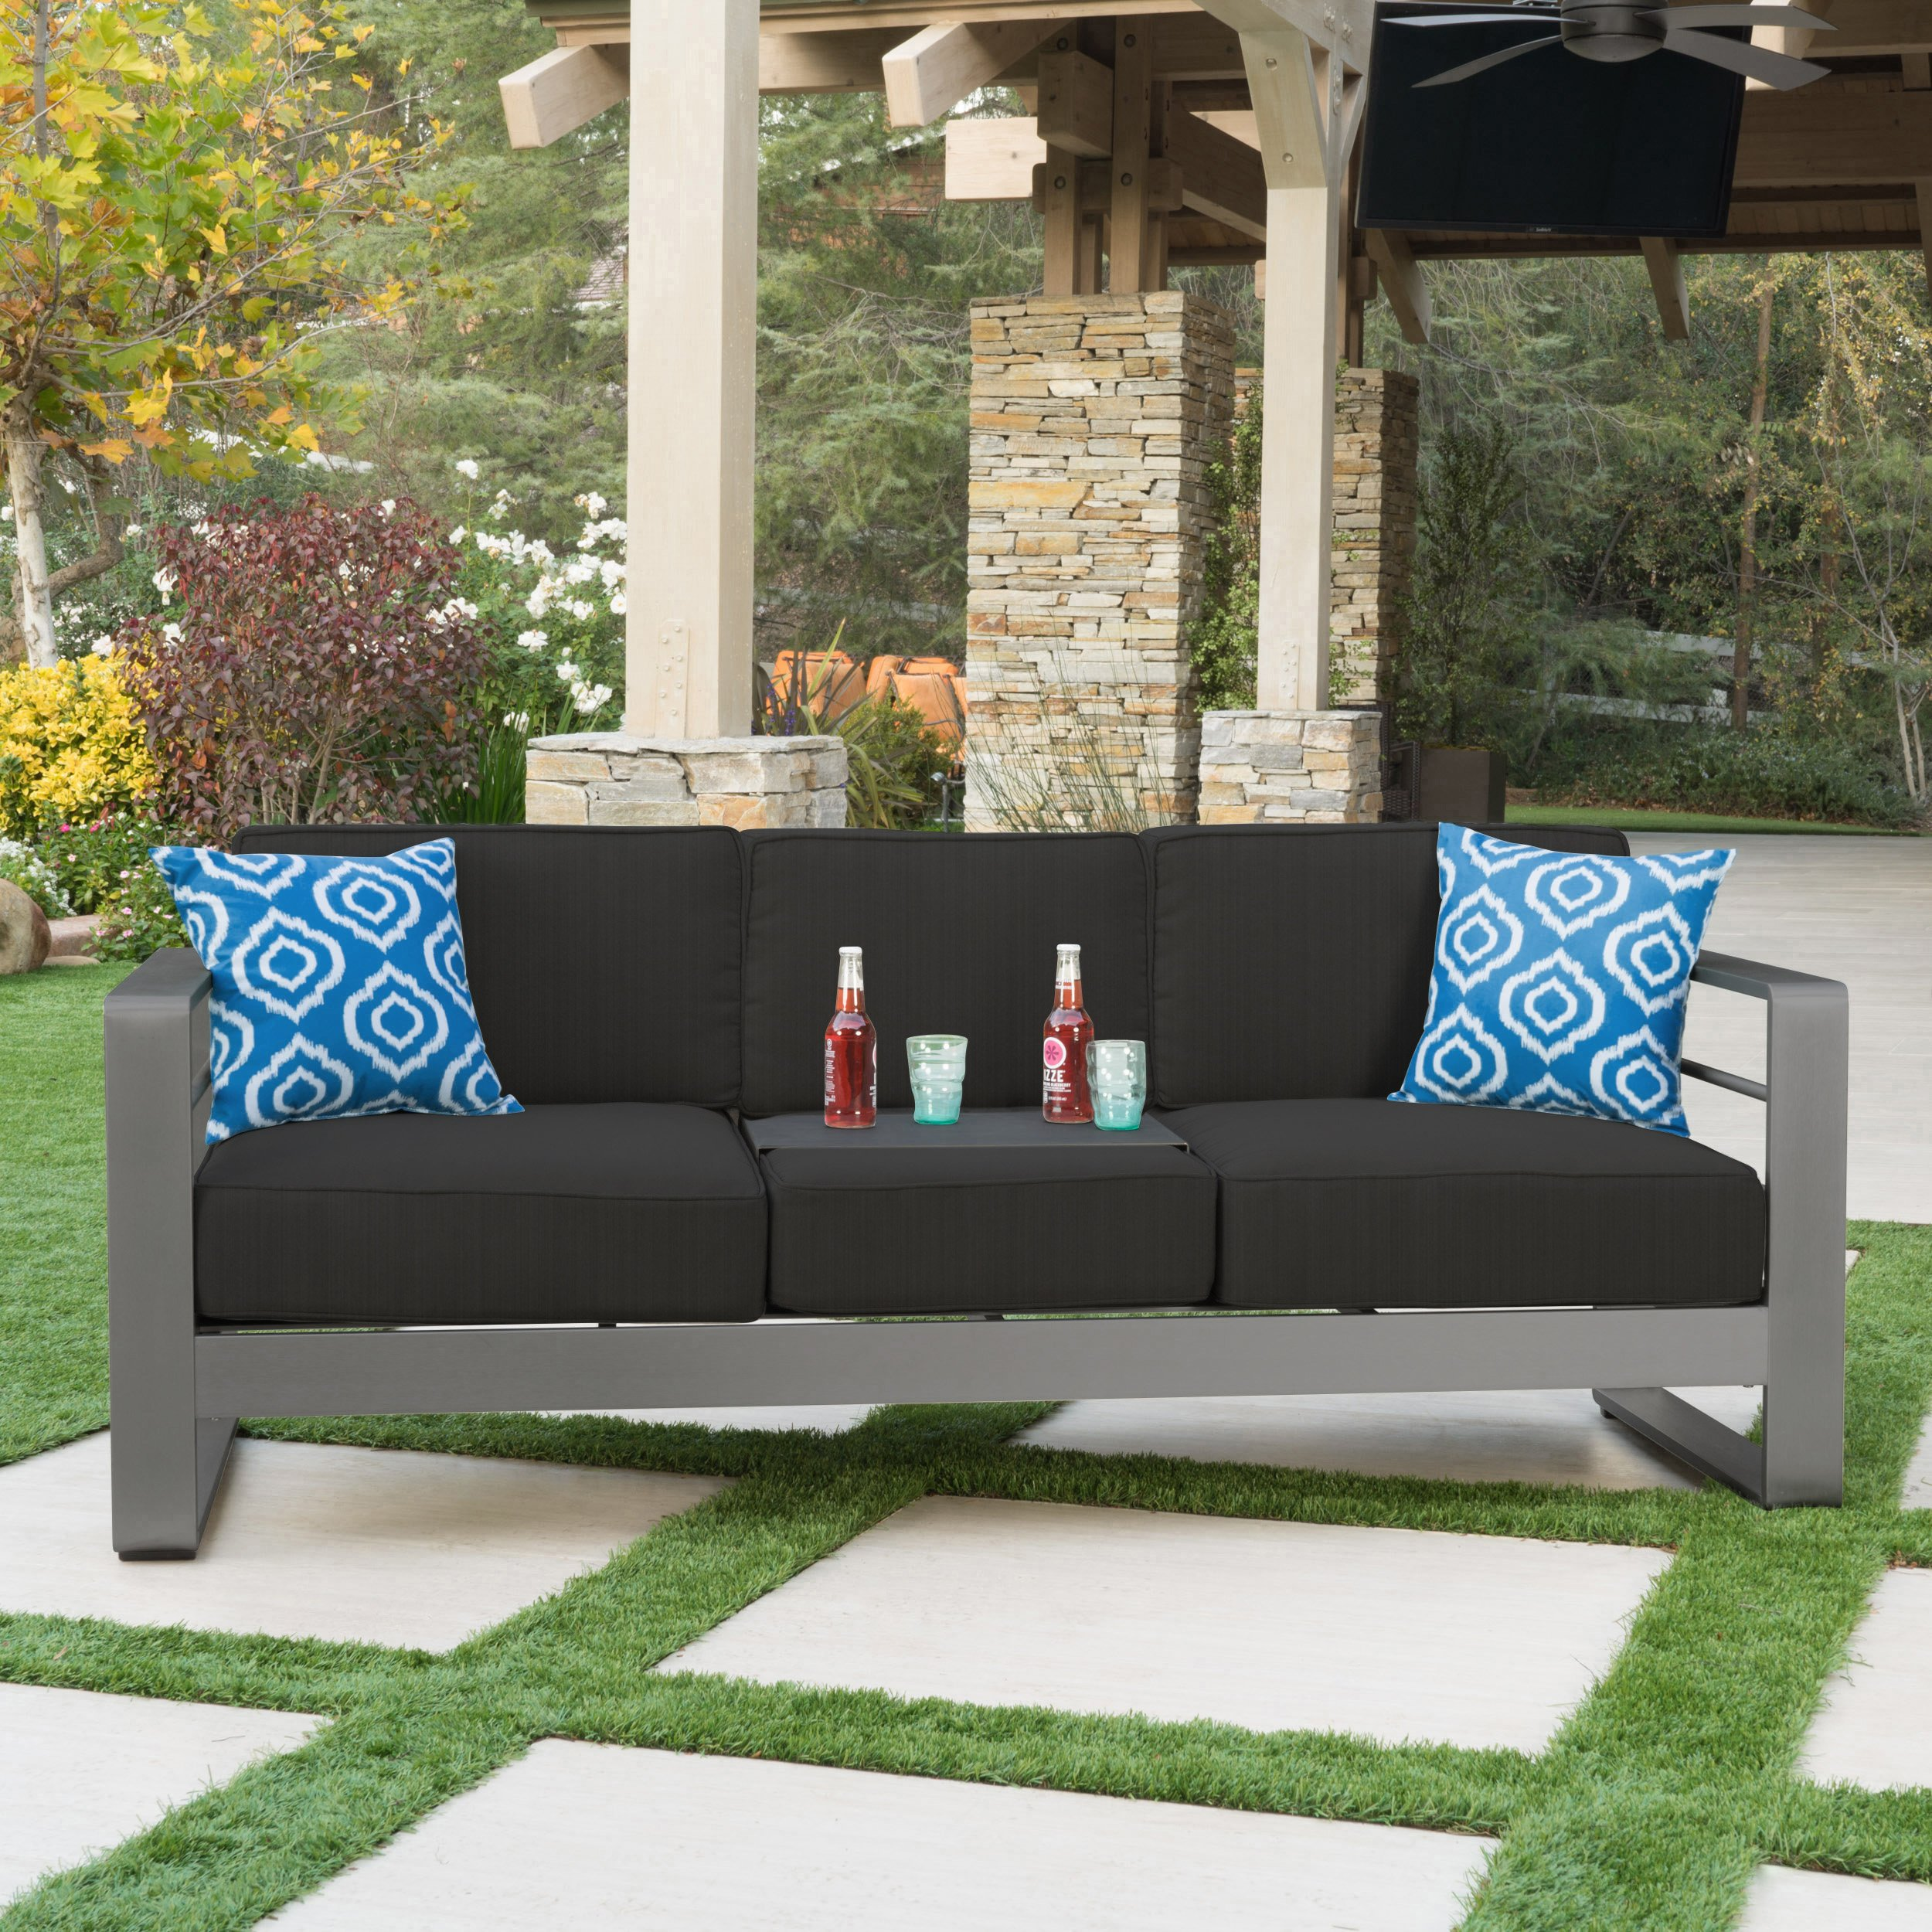 Christopher Knight Home Crested Bay Patio Furniture | Outdoor Grey Aluminum Sofa Couch with Dark Grey Water Resistant Cushions by Christopher Knight Home